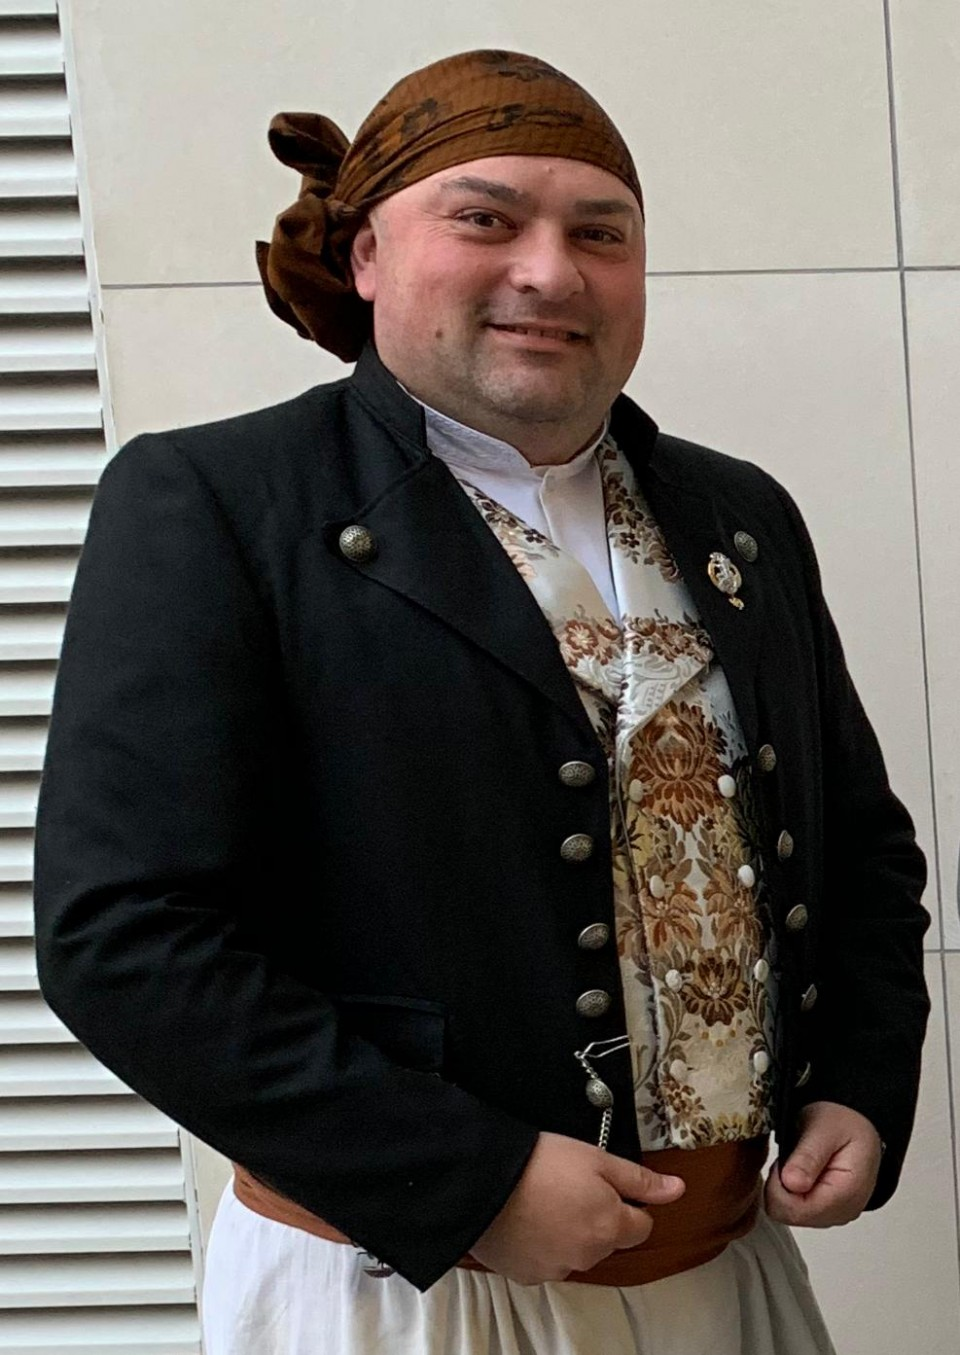 The Falla of Canary Islands-Trafalgar re-elect its President for the Fallas 2021